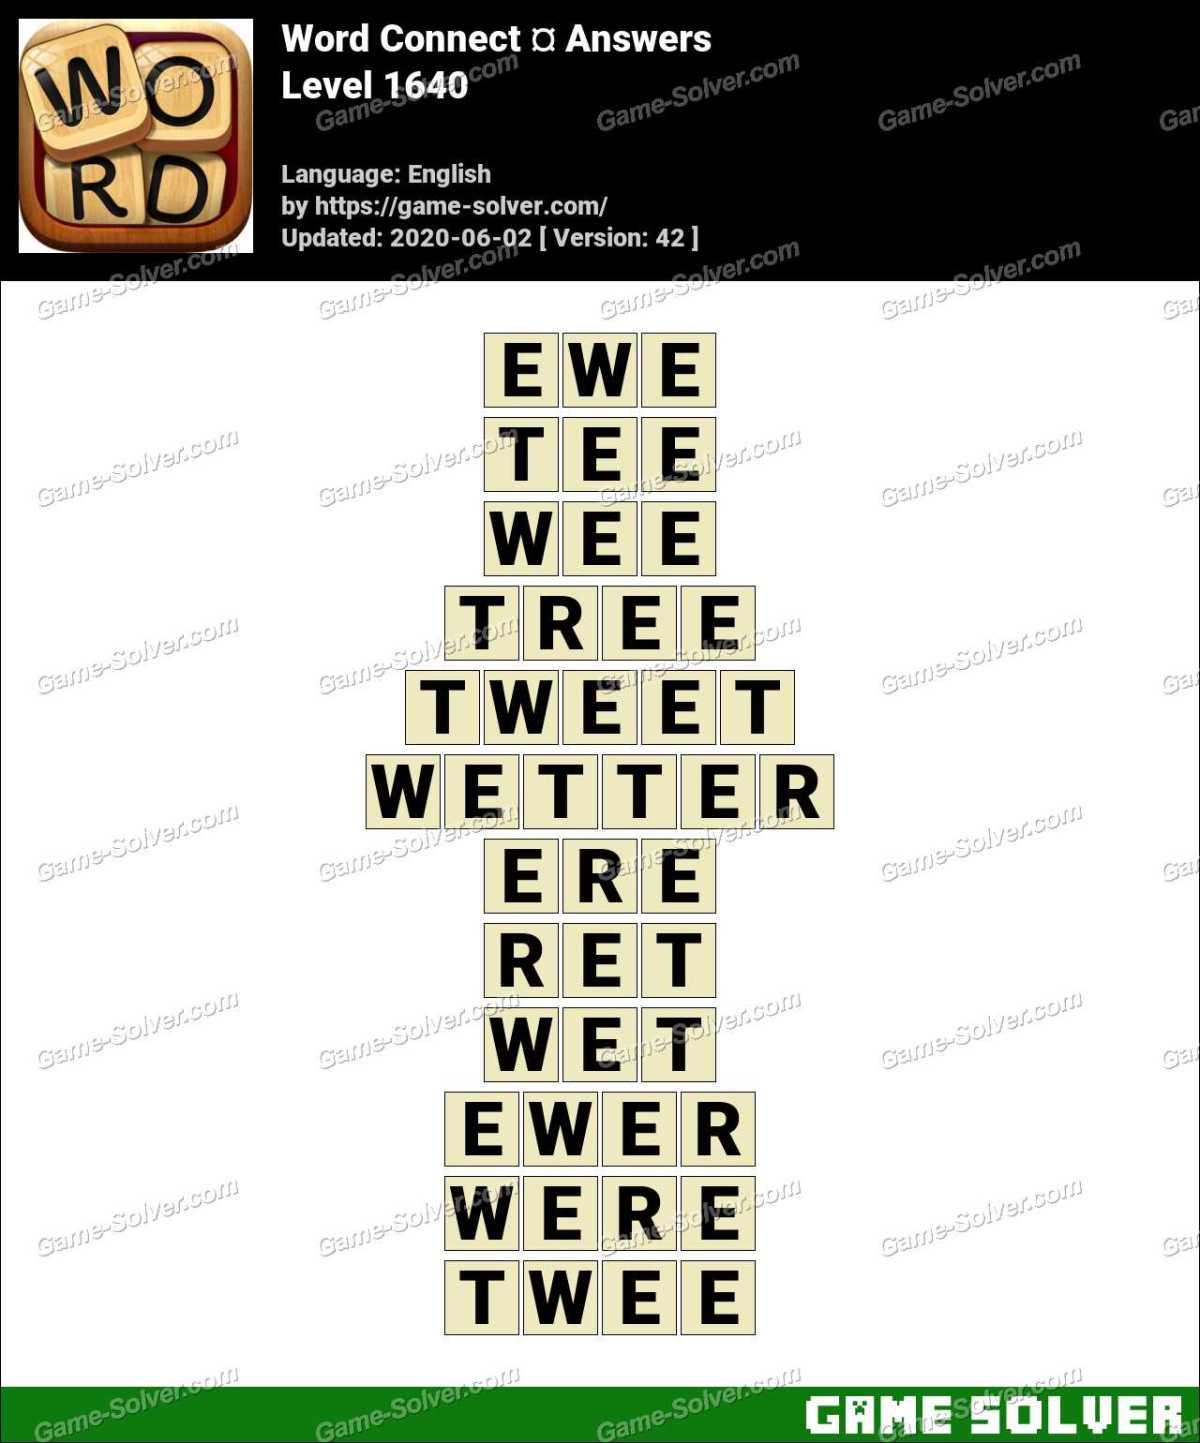 Word Connect Level 1640 Answers